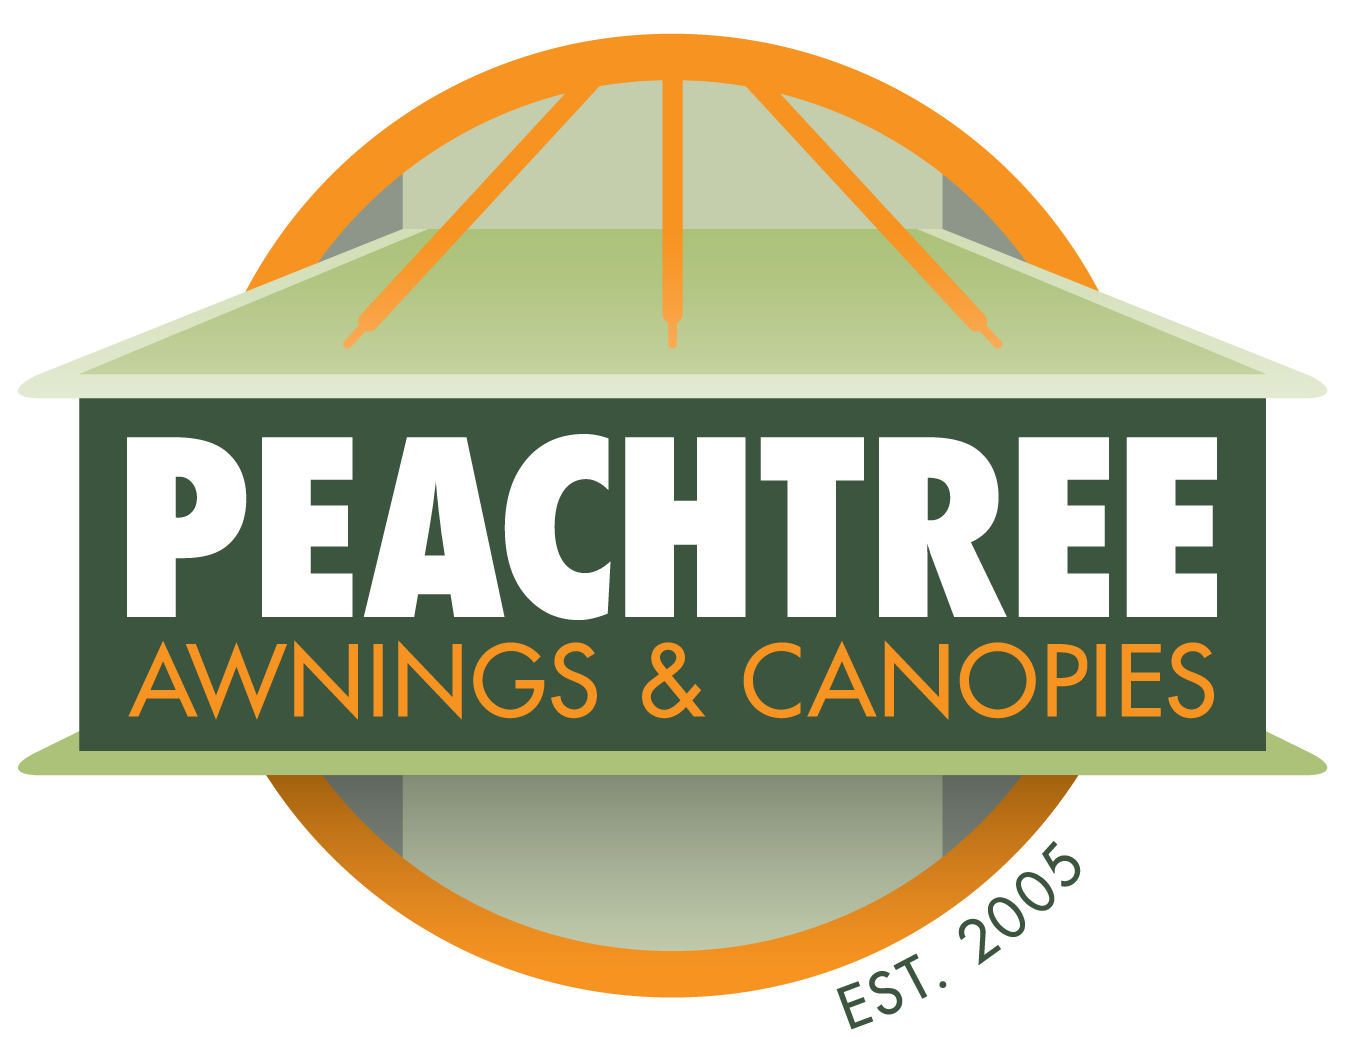 Peachtree Awnings logo